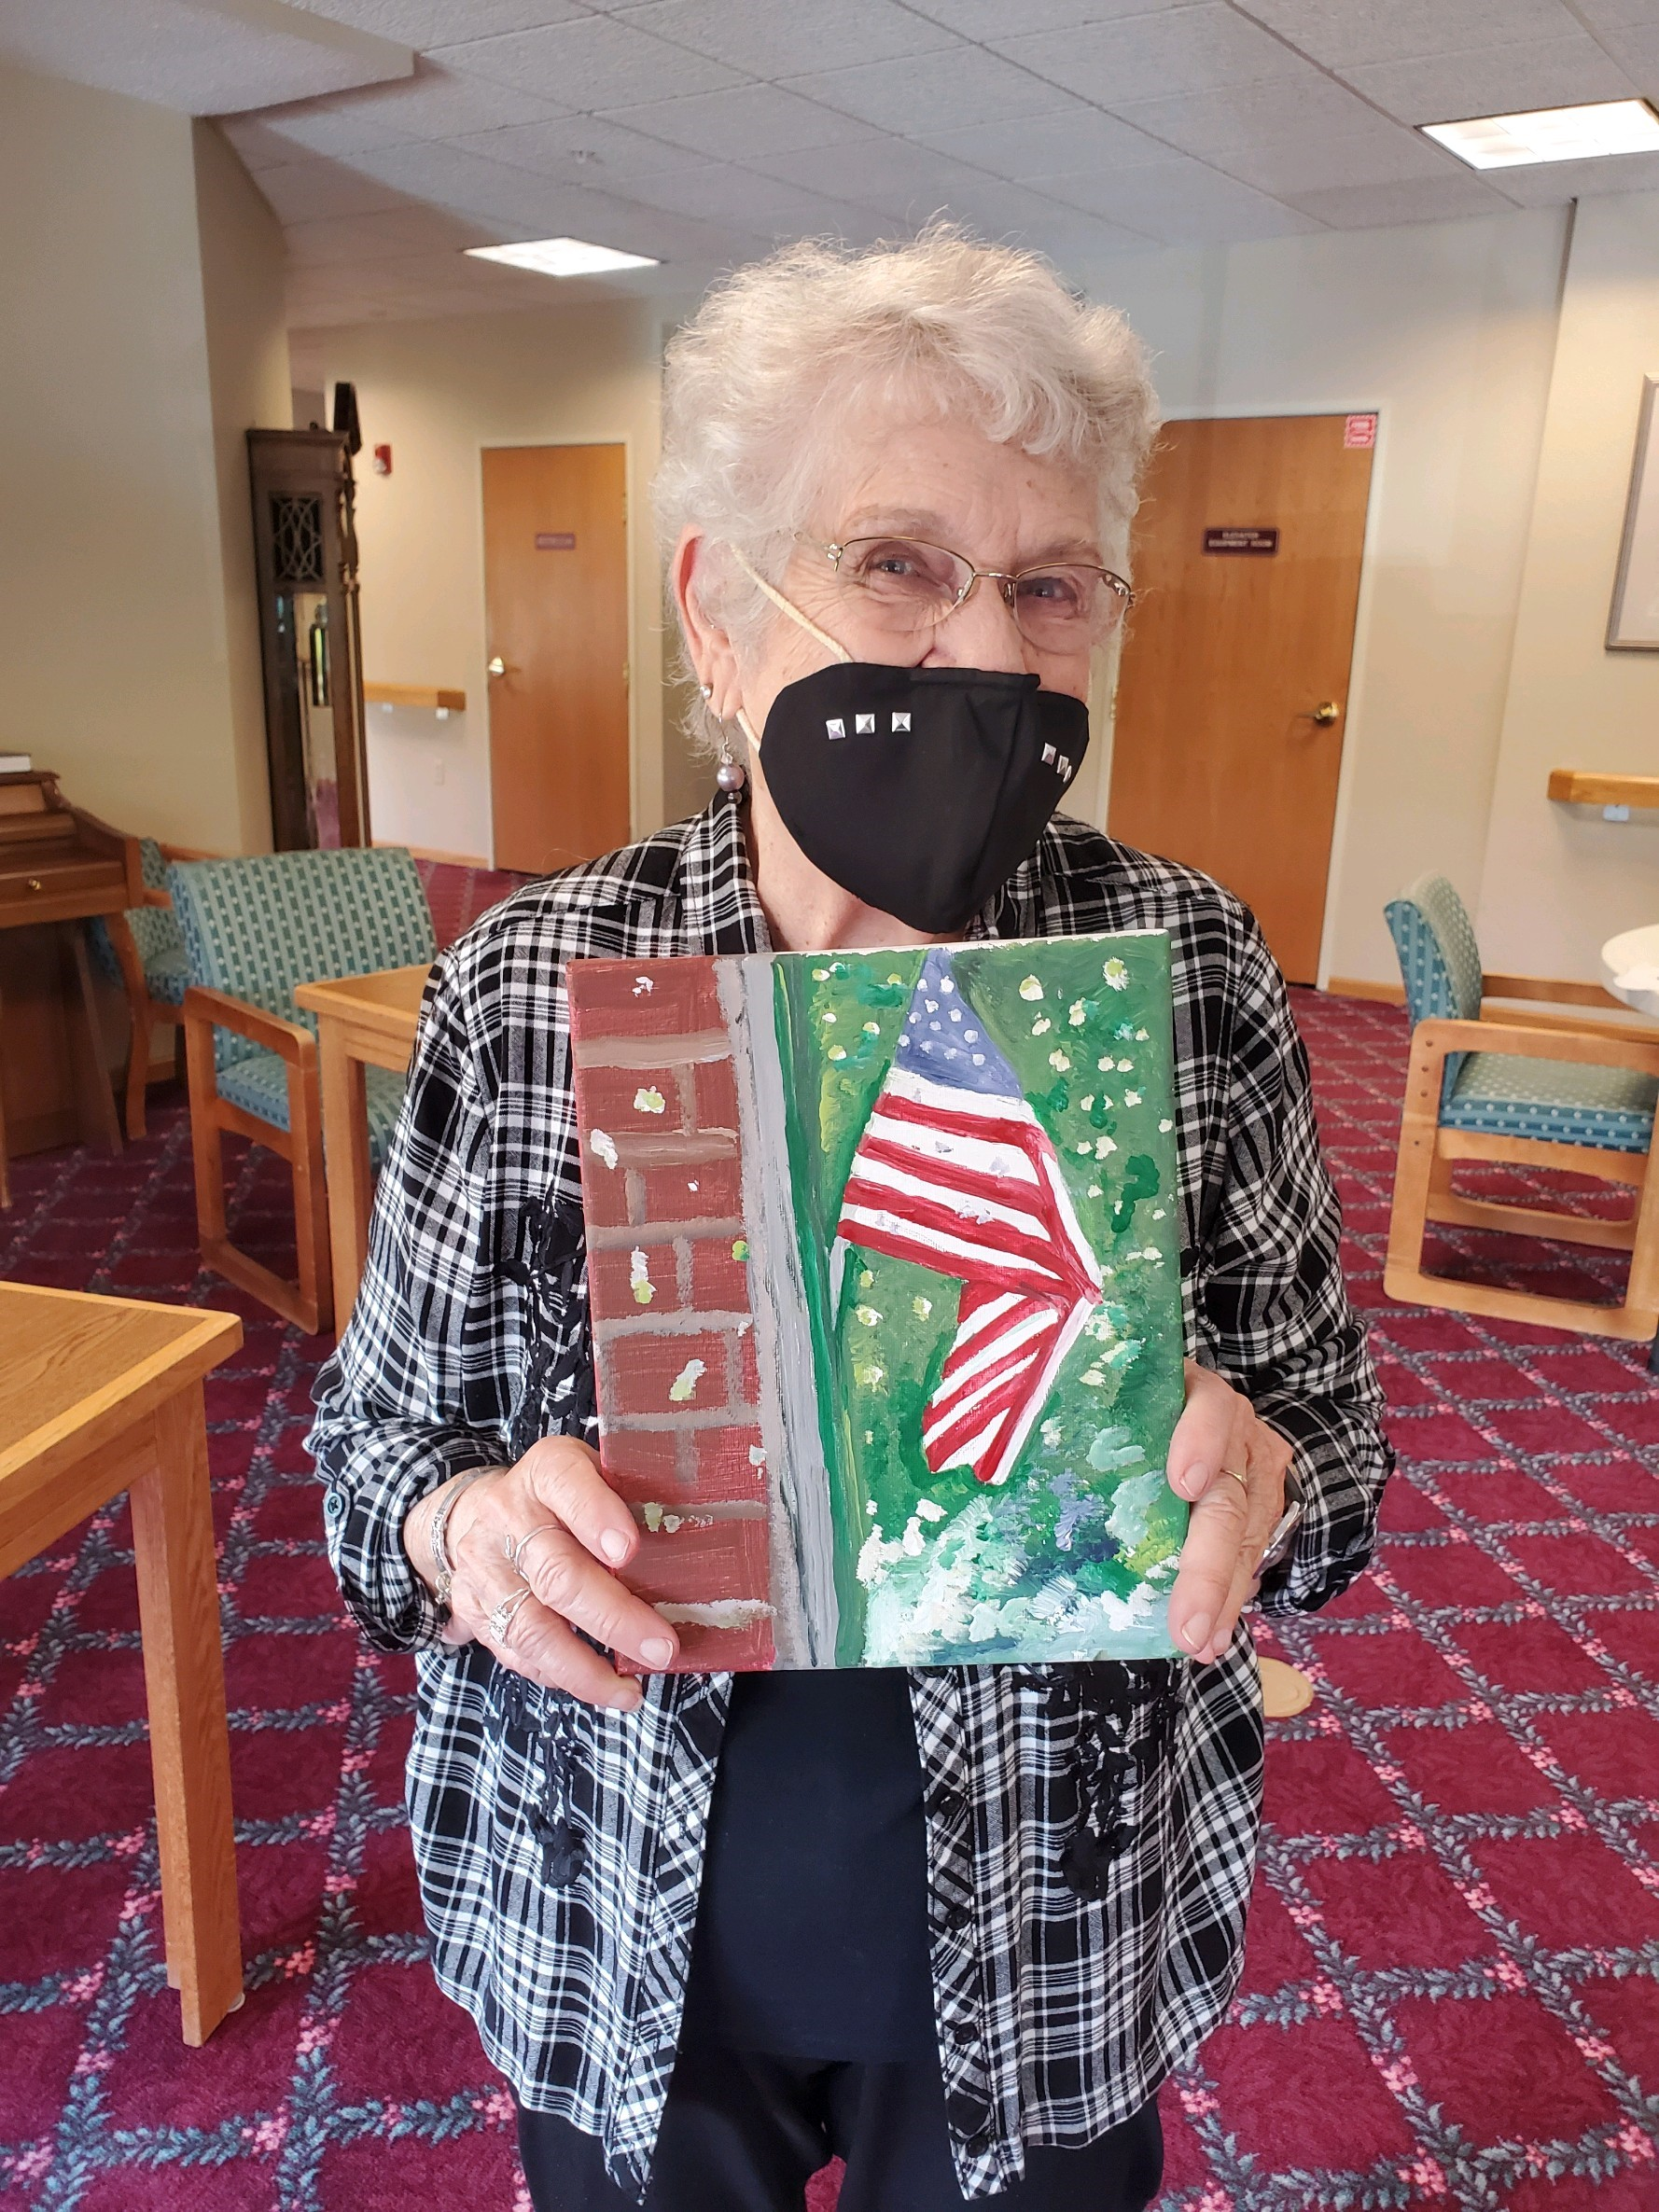 Norma is flashing her patriotic smile under that mask!